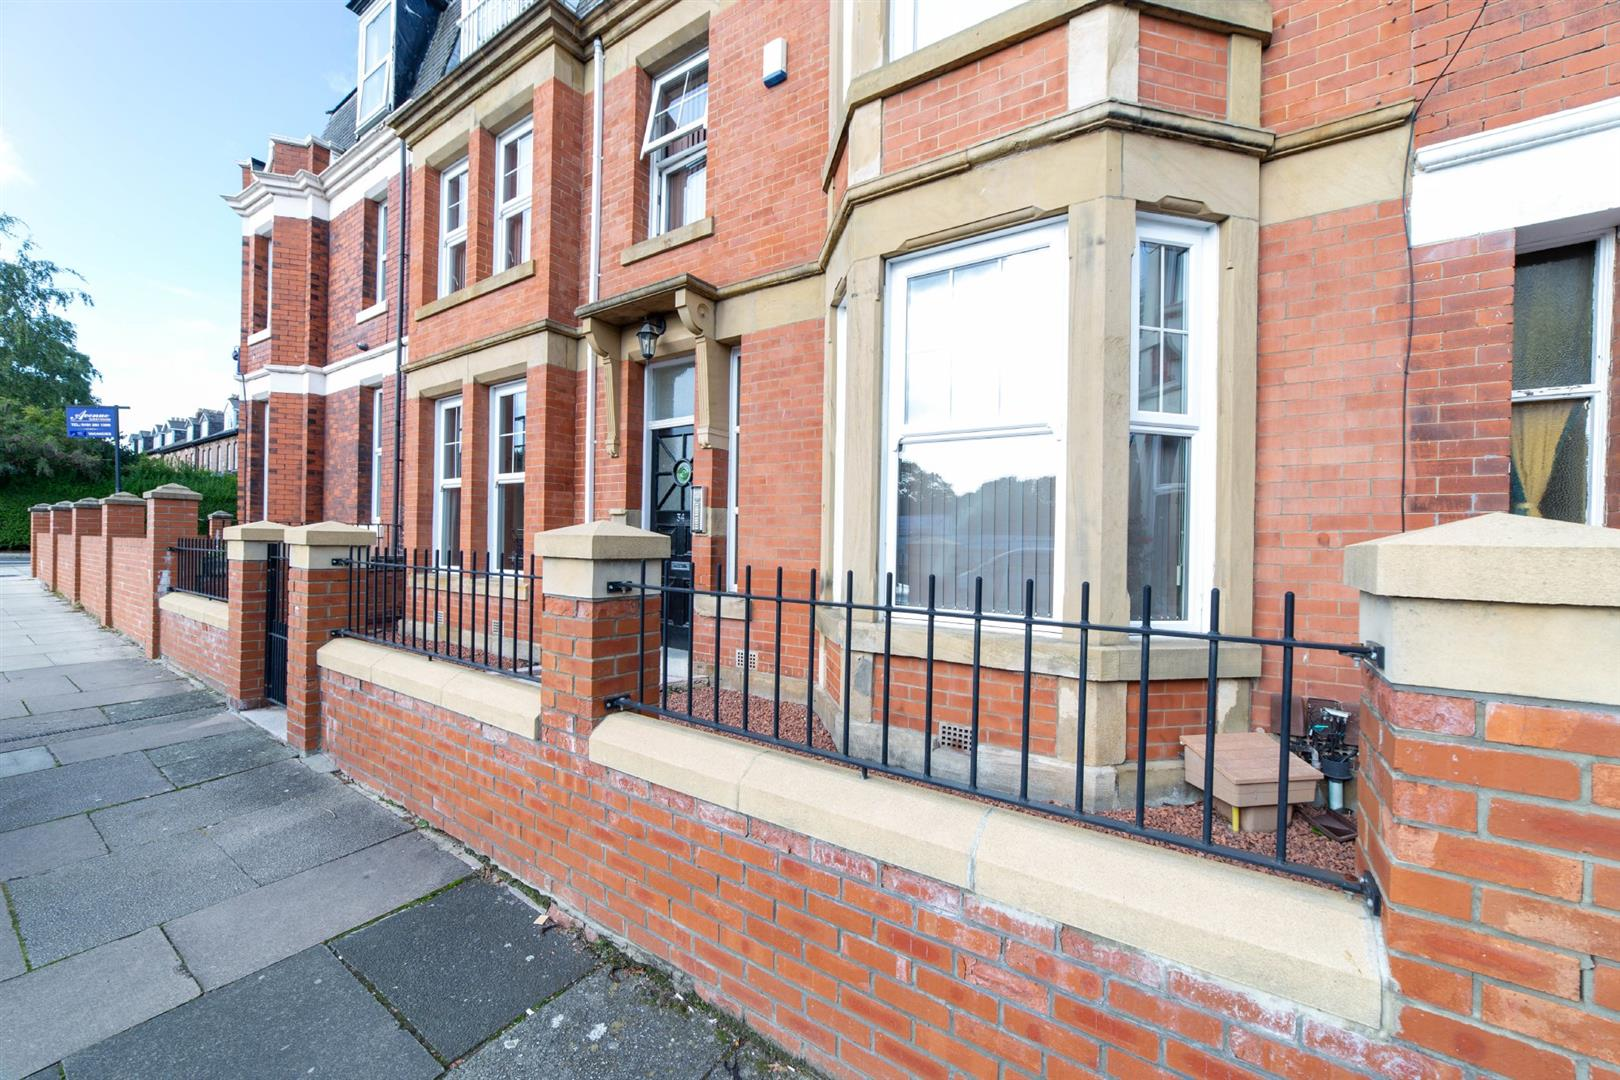 8 bed terraced house to rent in Newcastle Upon Tyne, NE2 1JS 9